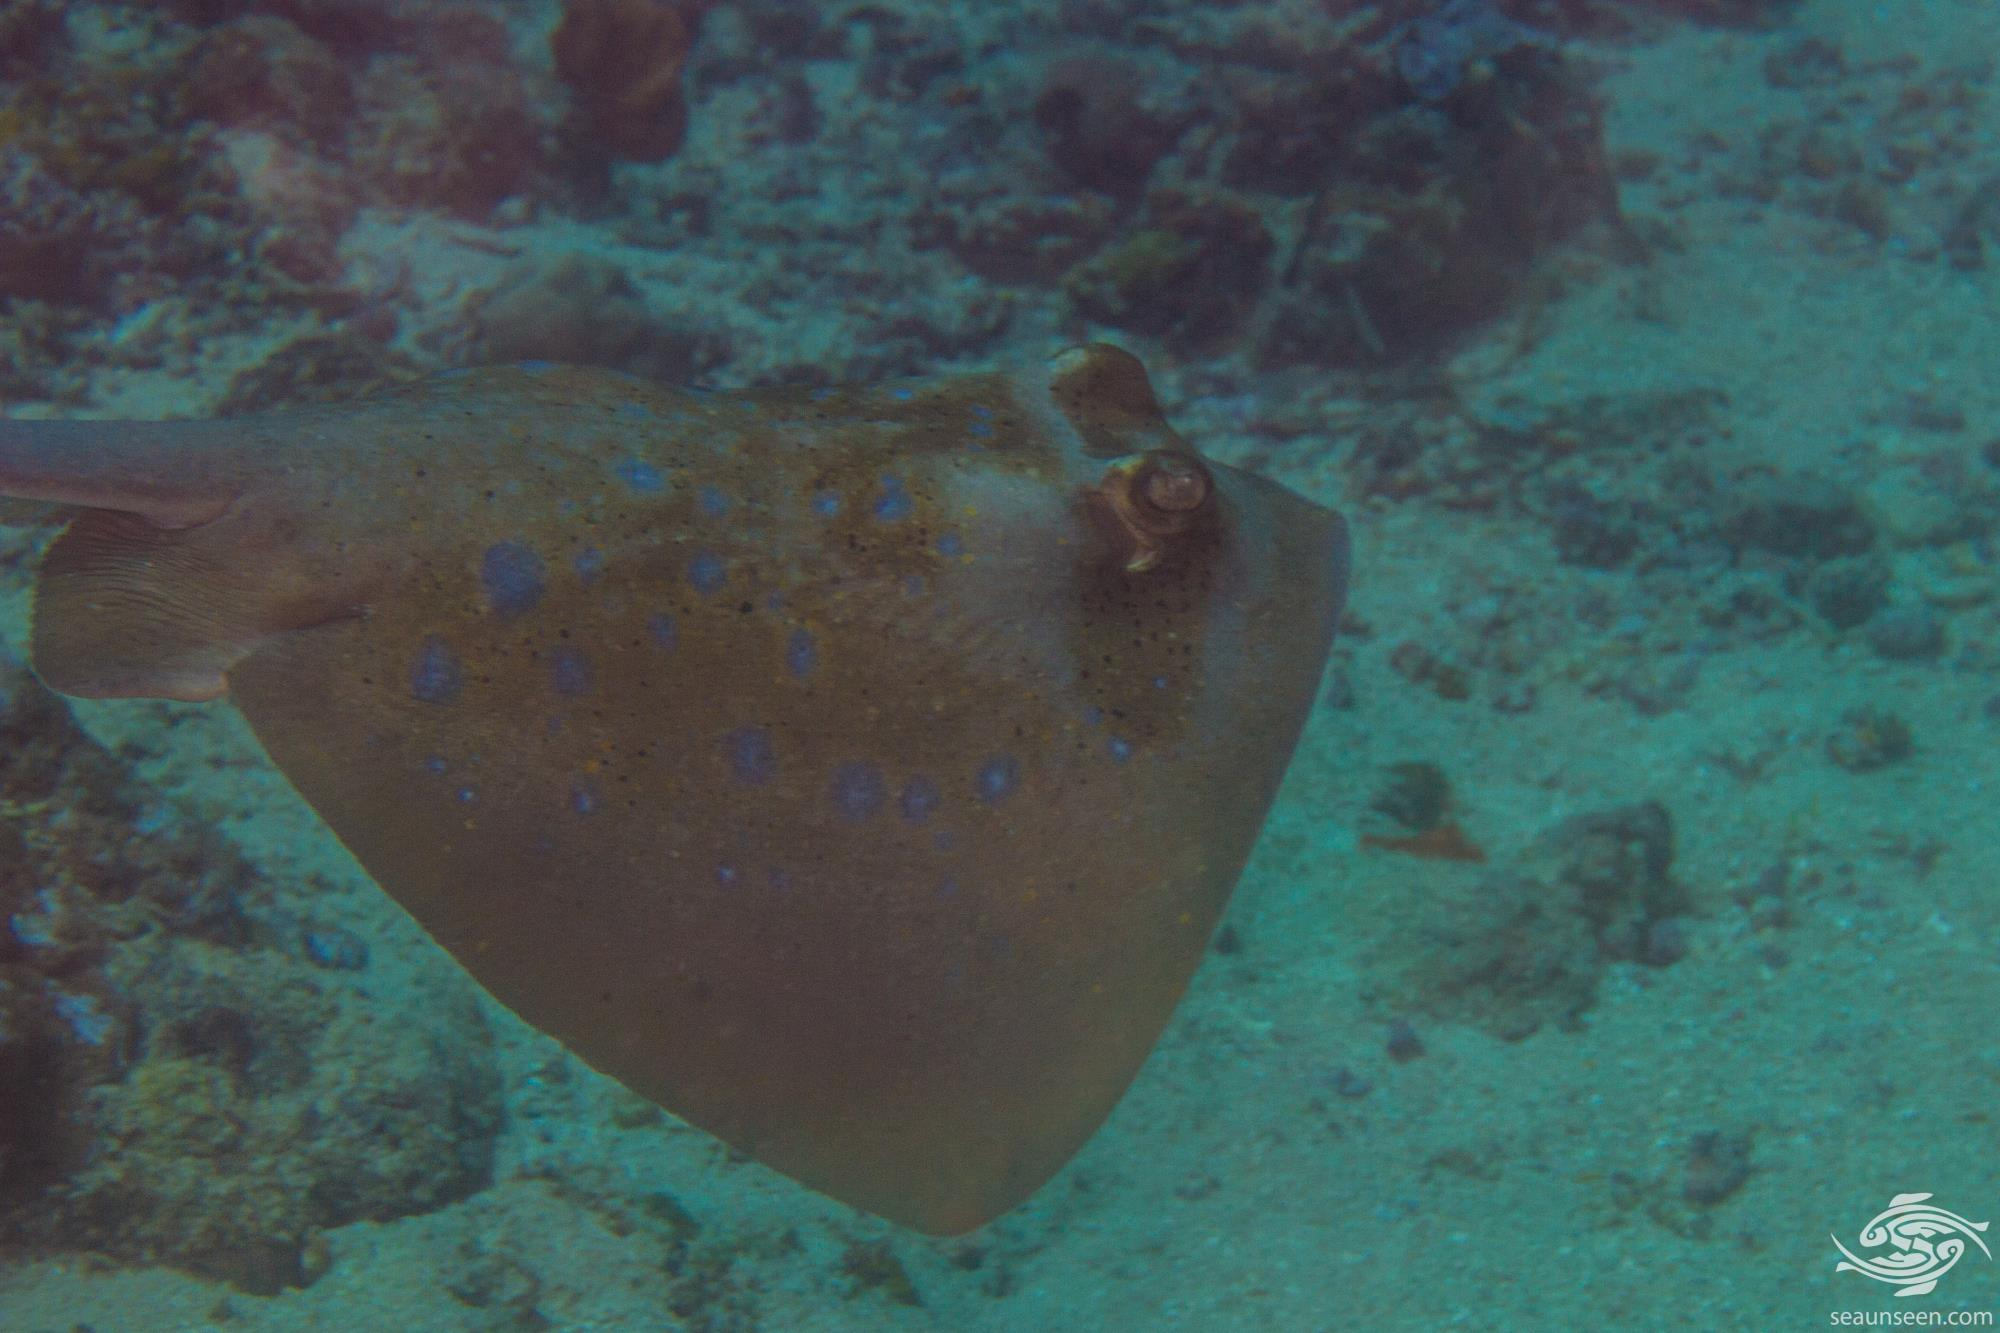 Indian Ocean Blue-spotted Stingray ( Neotrygon indica sp. nov) is also known as the Indian Ocean Bluespotted Maskray